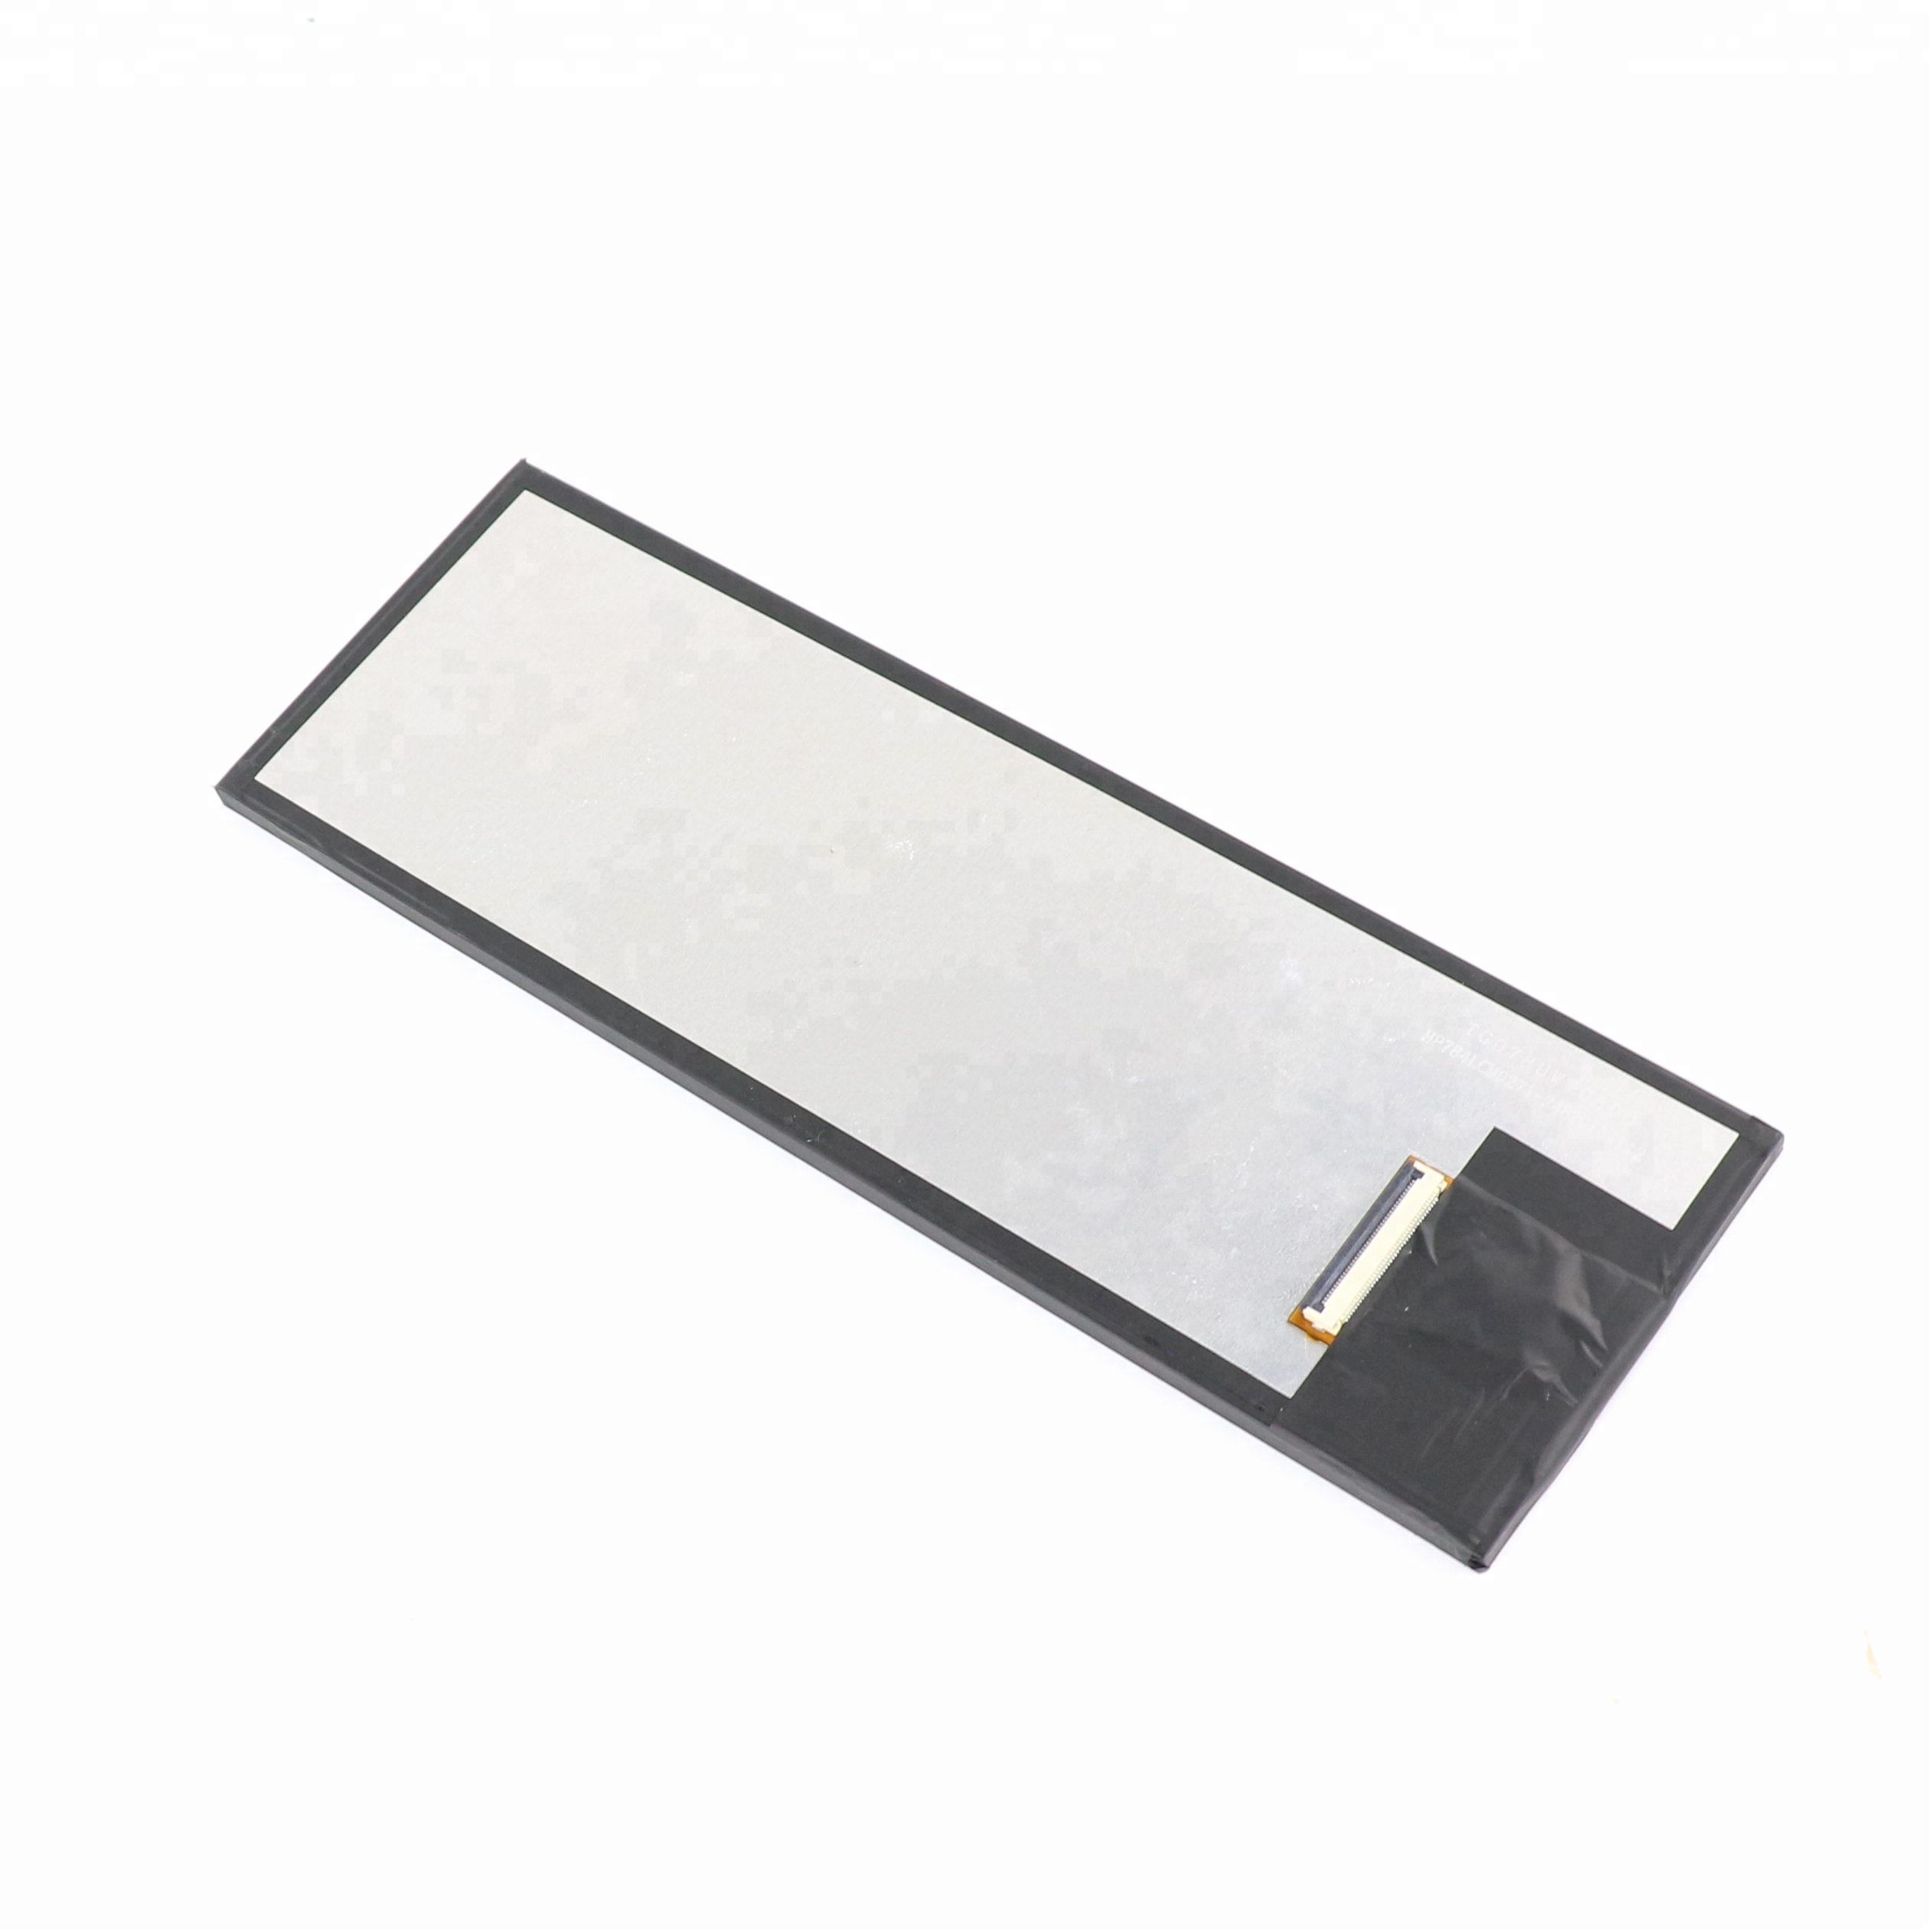 Techstar OEM Bar type 7 inch ips tft screen panel lcd